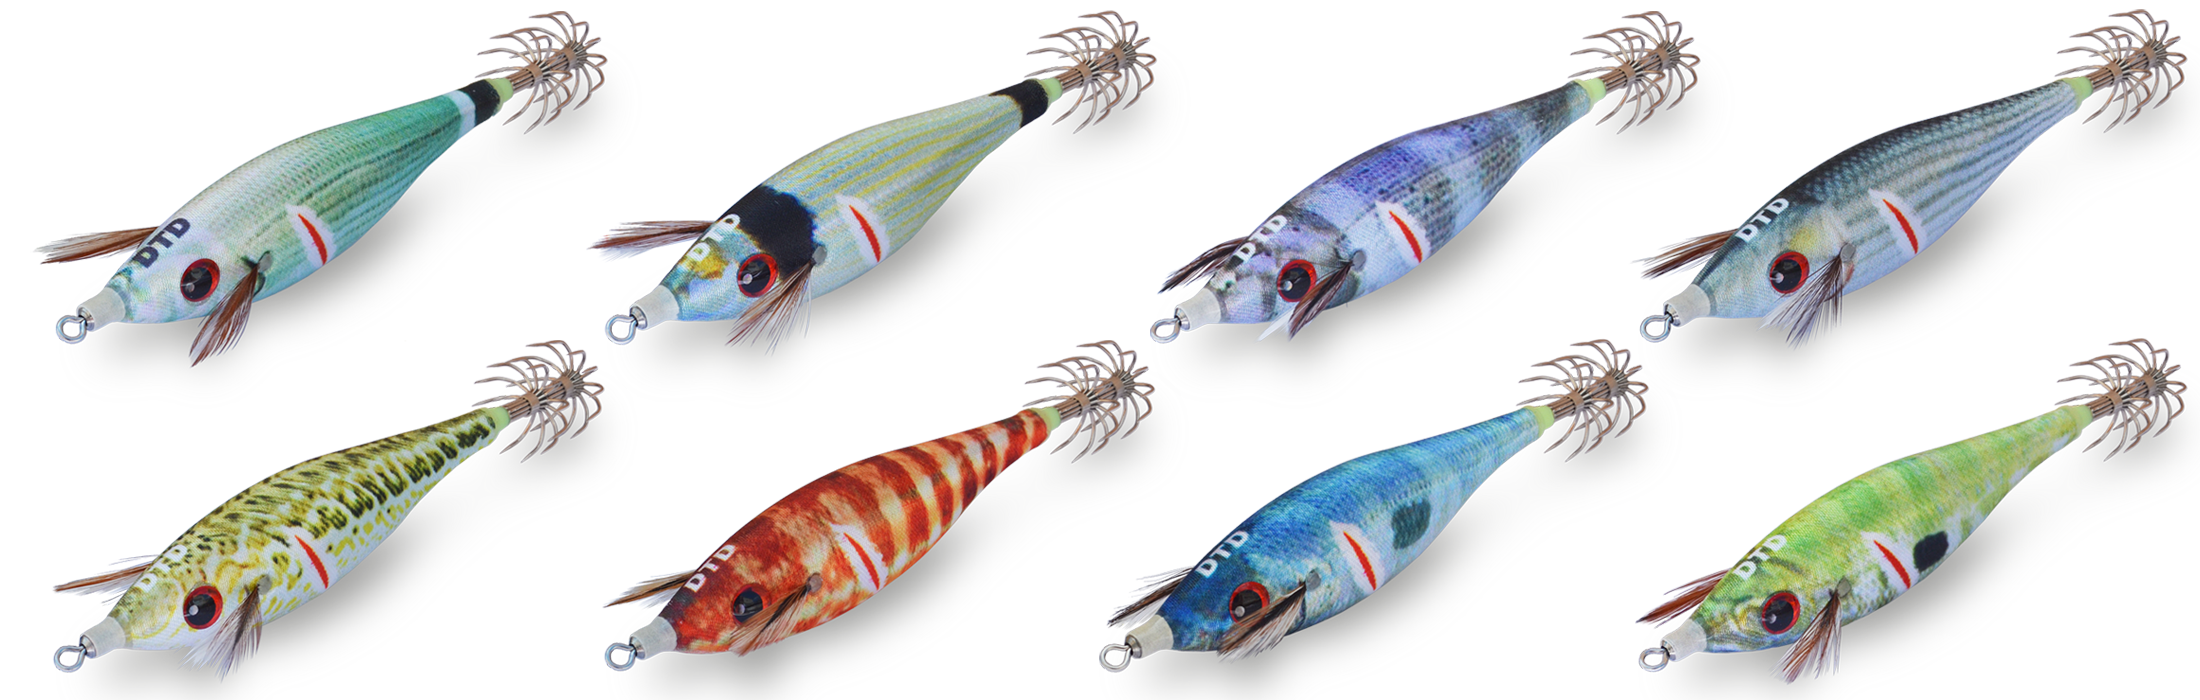 WOUNDED FISH - Squid jigs Bukva - DTD - High quality squid jigs